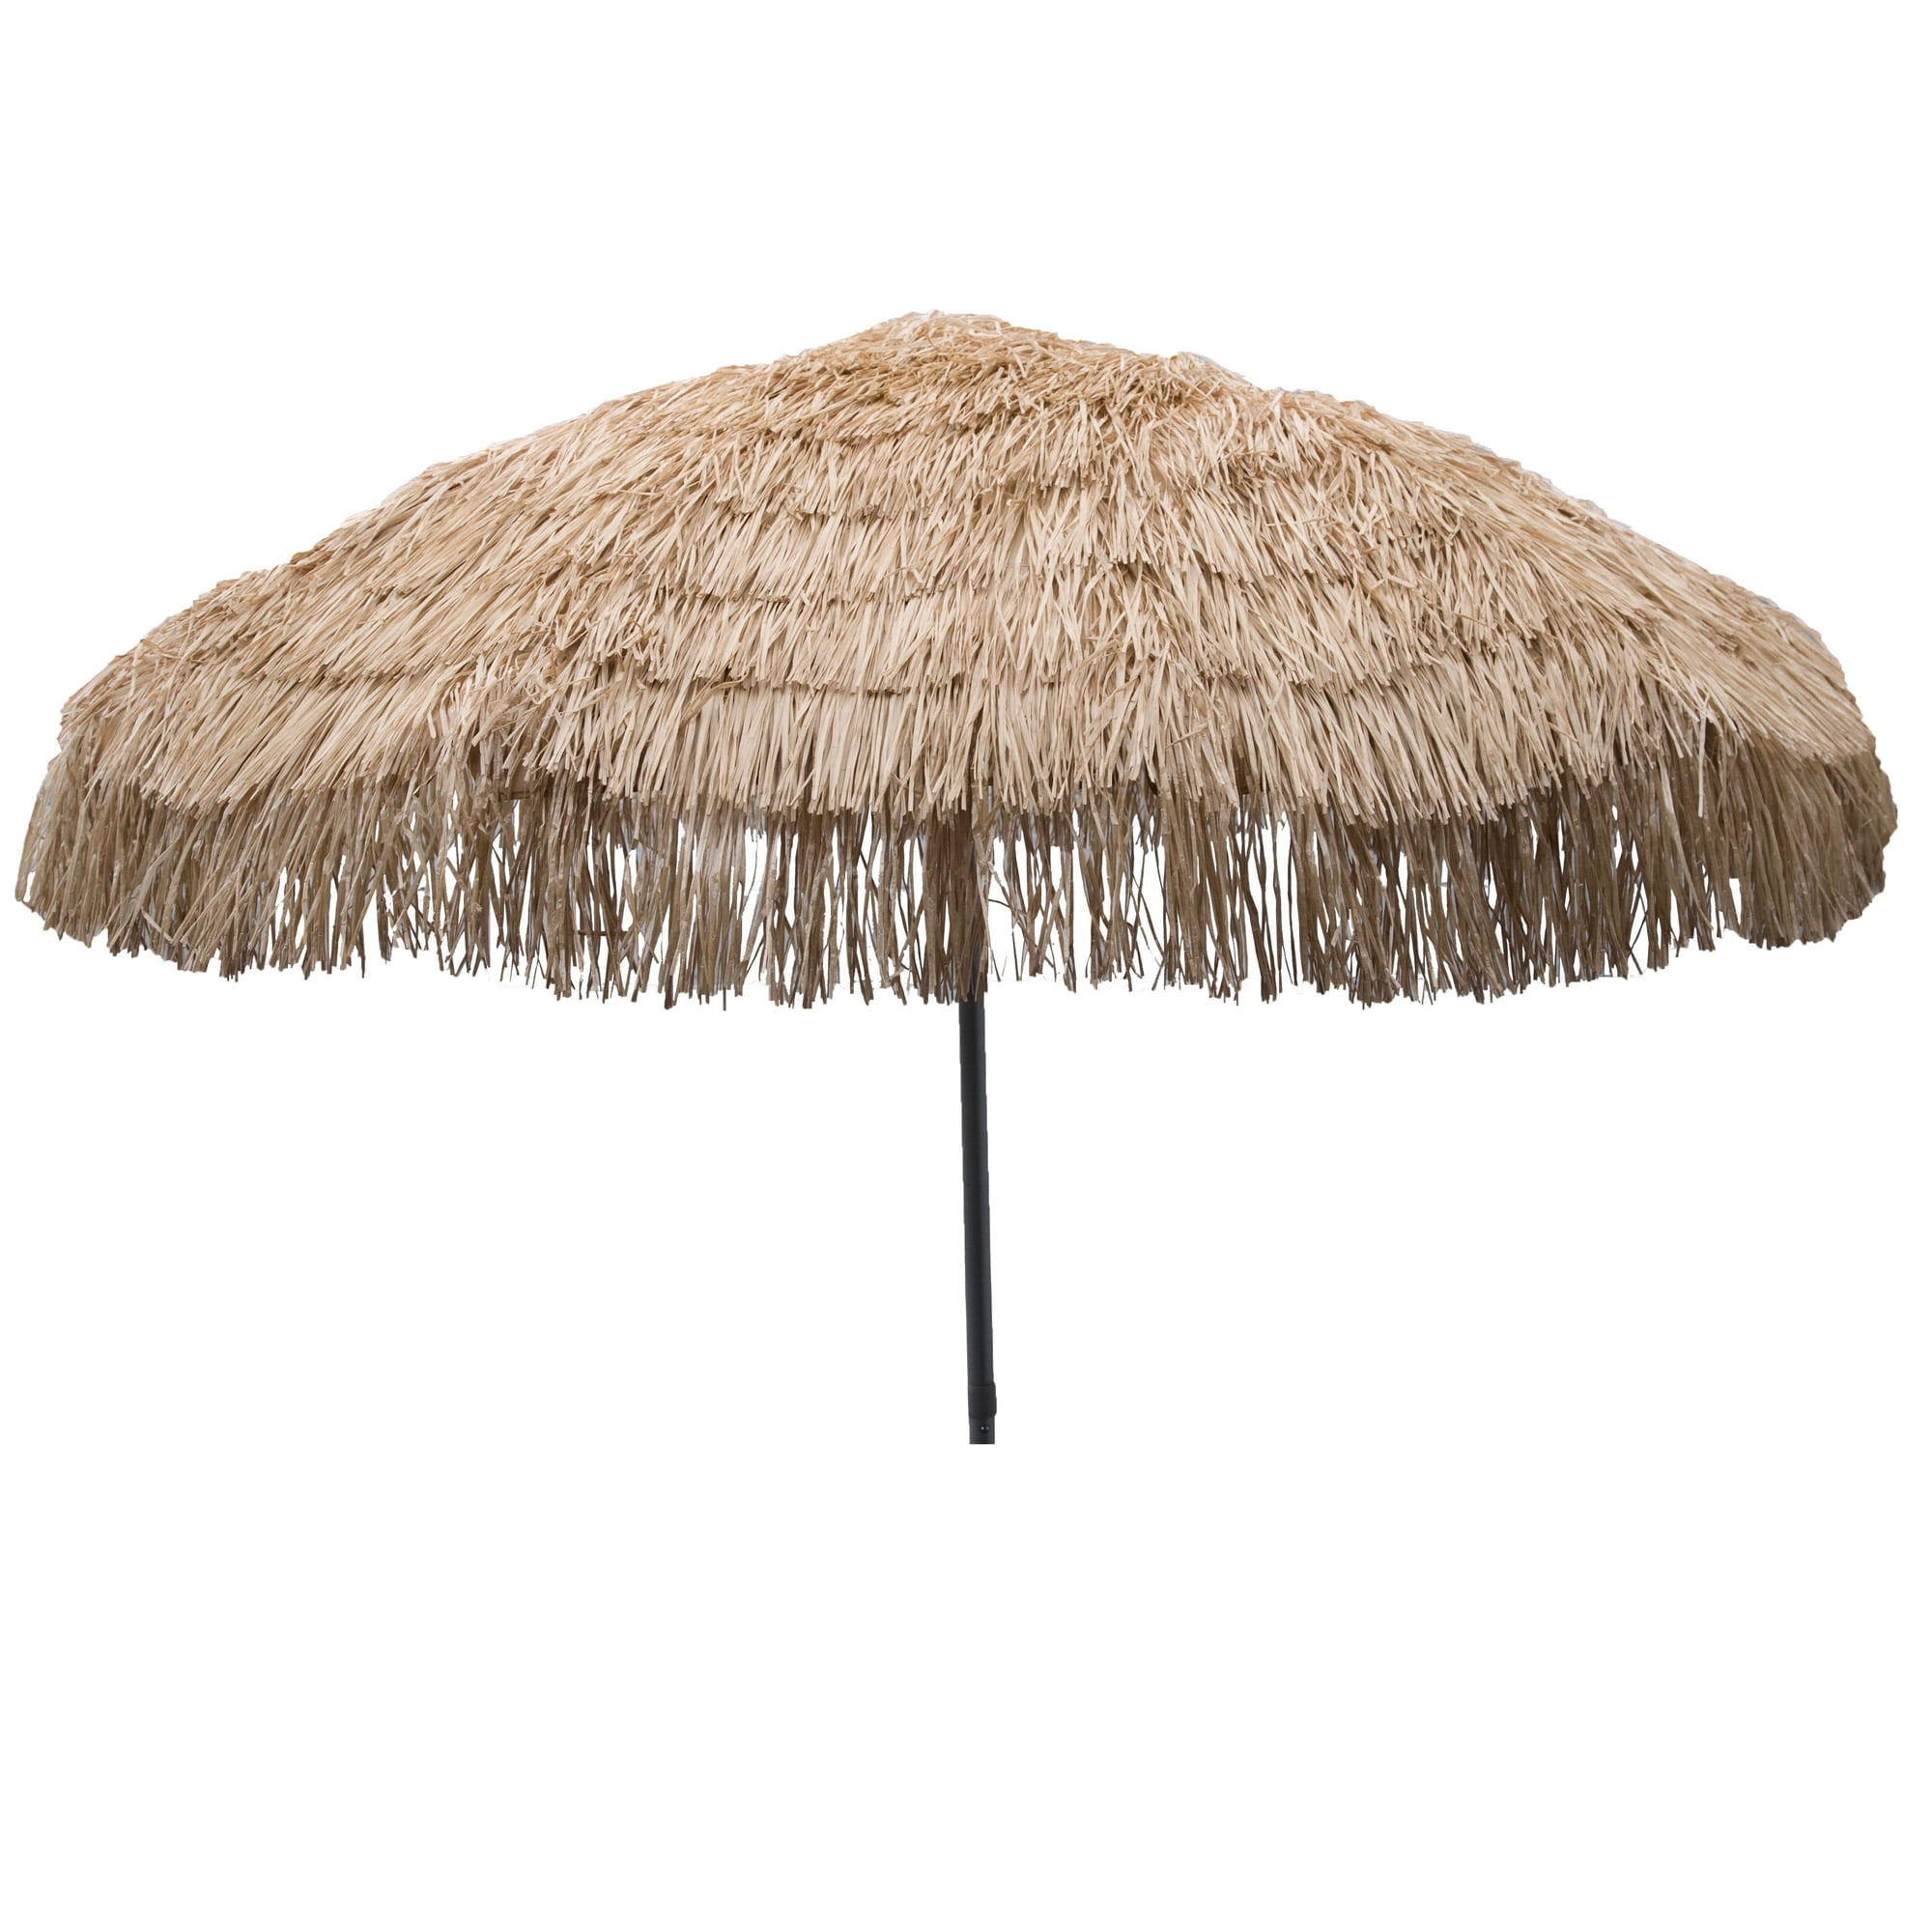 "DestinationGear Palapa Tiki Umbrella 7'6"" Whiskey Brown Patio Pole by Outdoor Umbrellas"